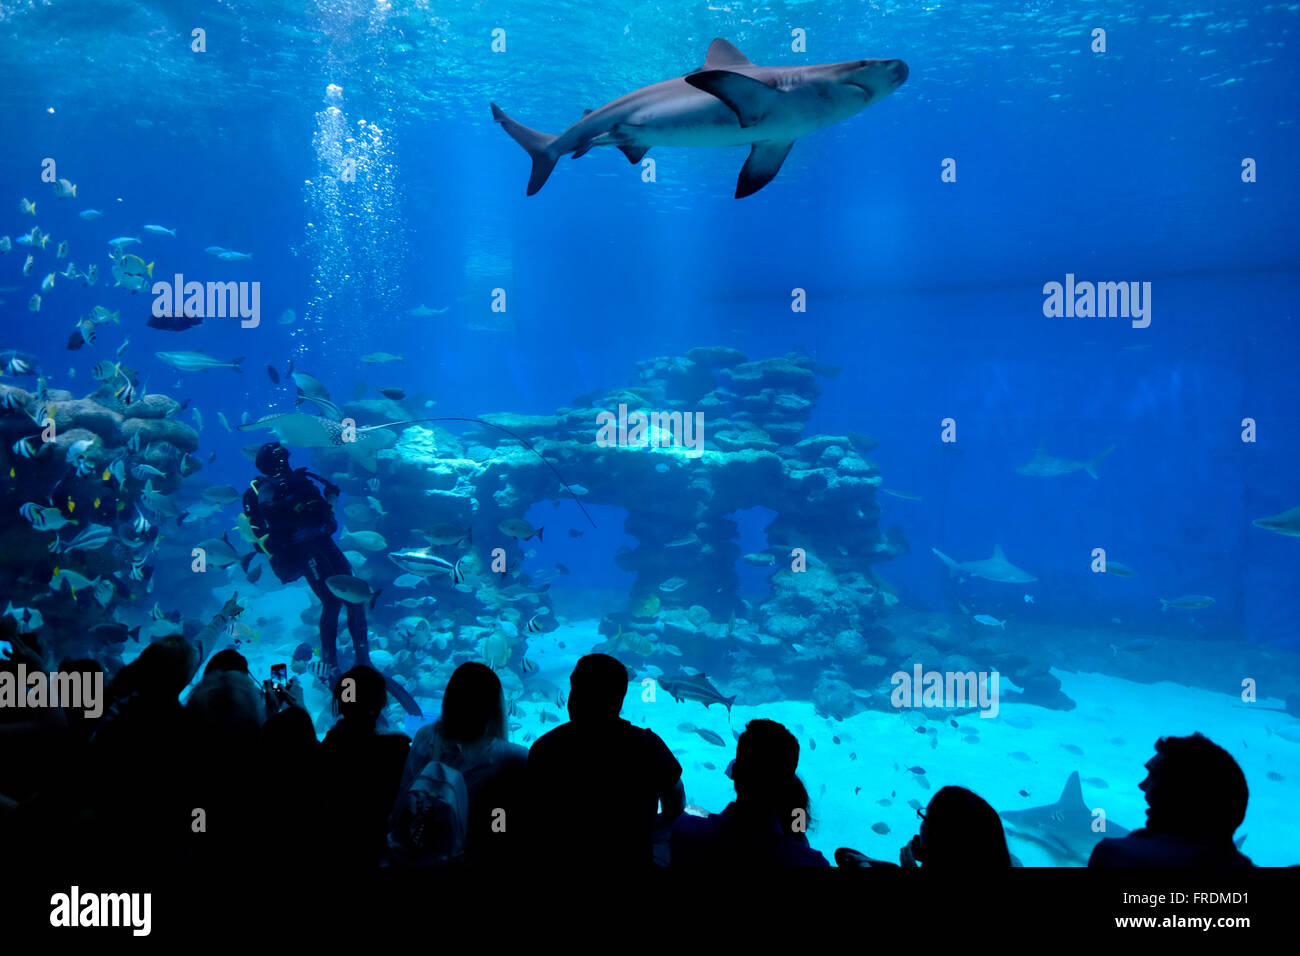 shark pool stock photos shark pool stock images alamy  ors in the shark pool of coral world underwater observatory aquarium located in the city of